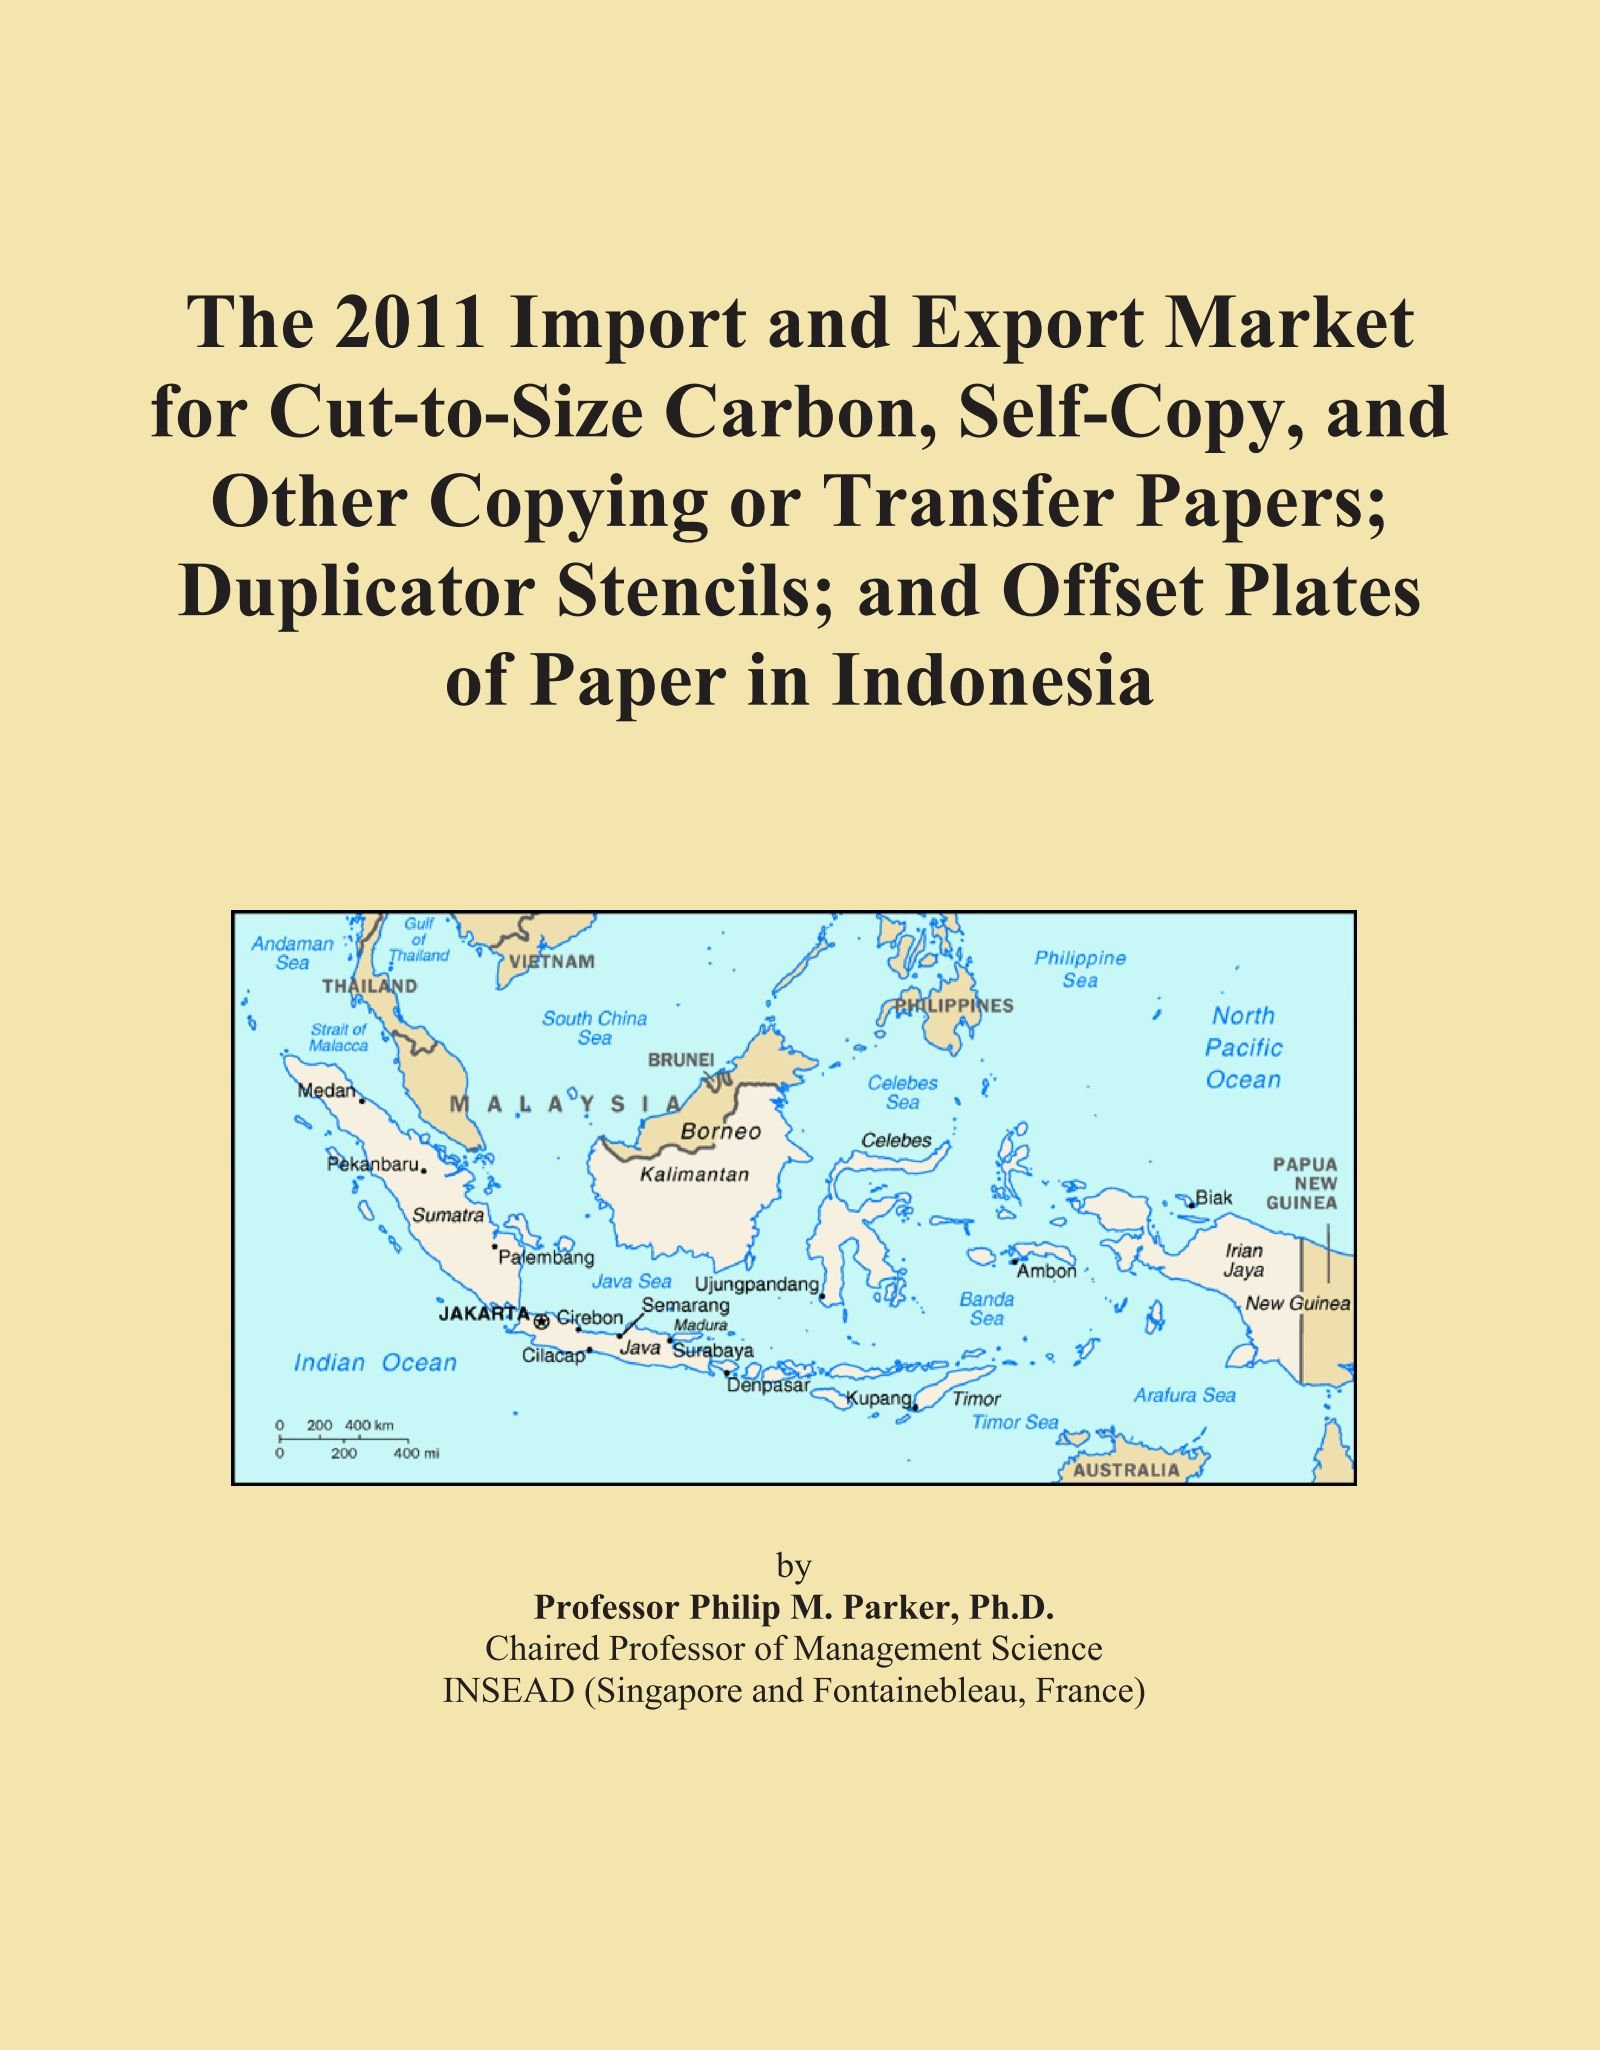 The 2011 Import and Export Market for Cut-to-Size Carbon, Self-Copy, and Other Copying or Transfer Papers; Duplicator Stencils; and Offset Plates of Paper in Indonesia ebook